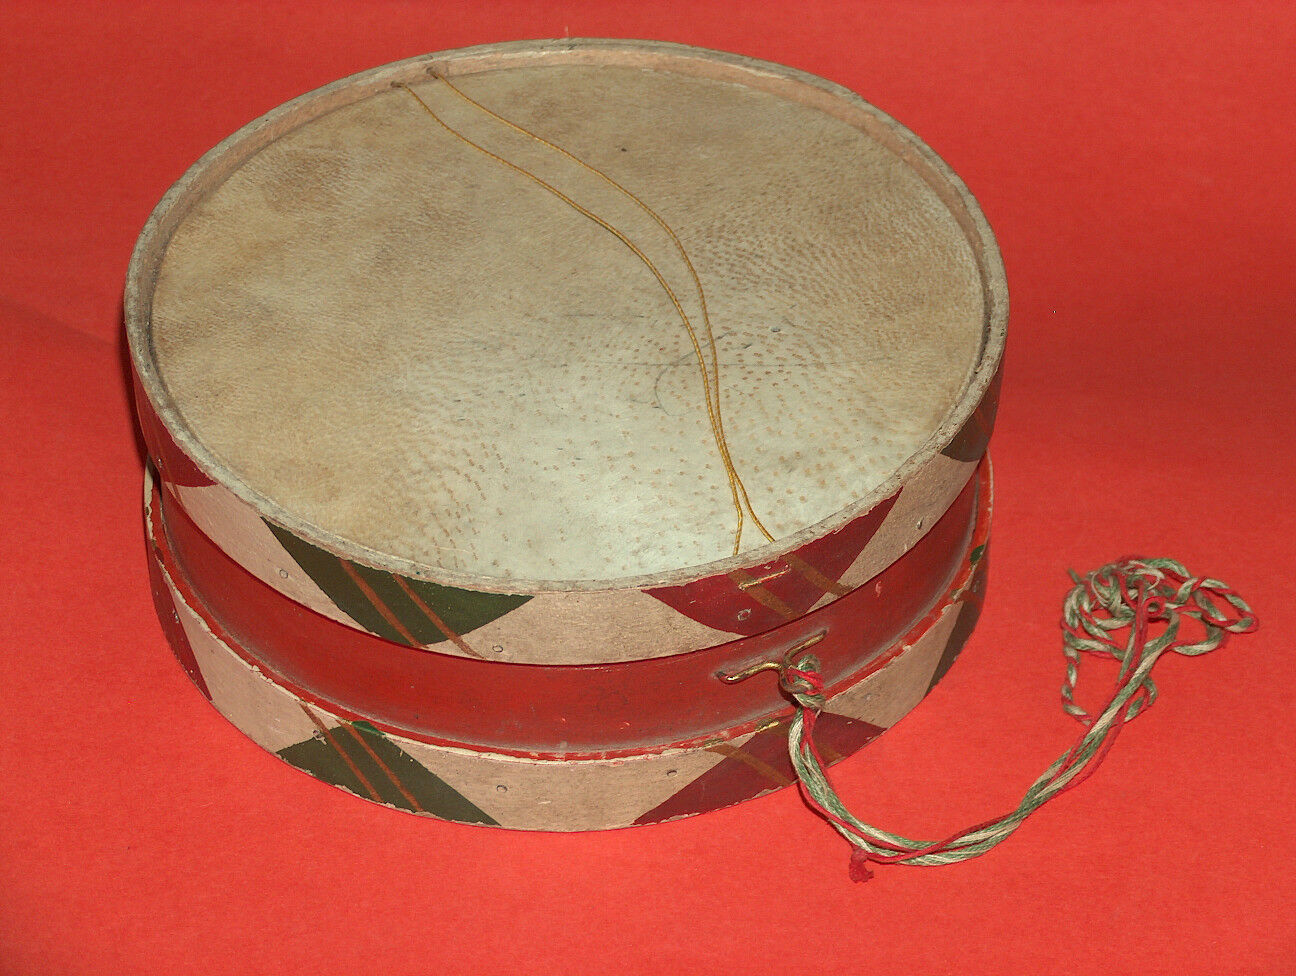 VINTAGE TOY - LEATHER AND WOOD DRUM, BULGARIA, 1960-70